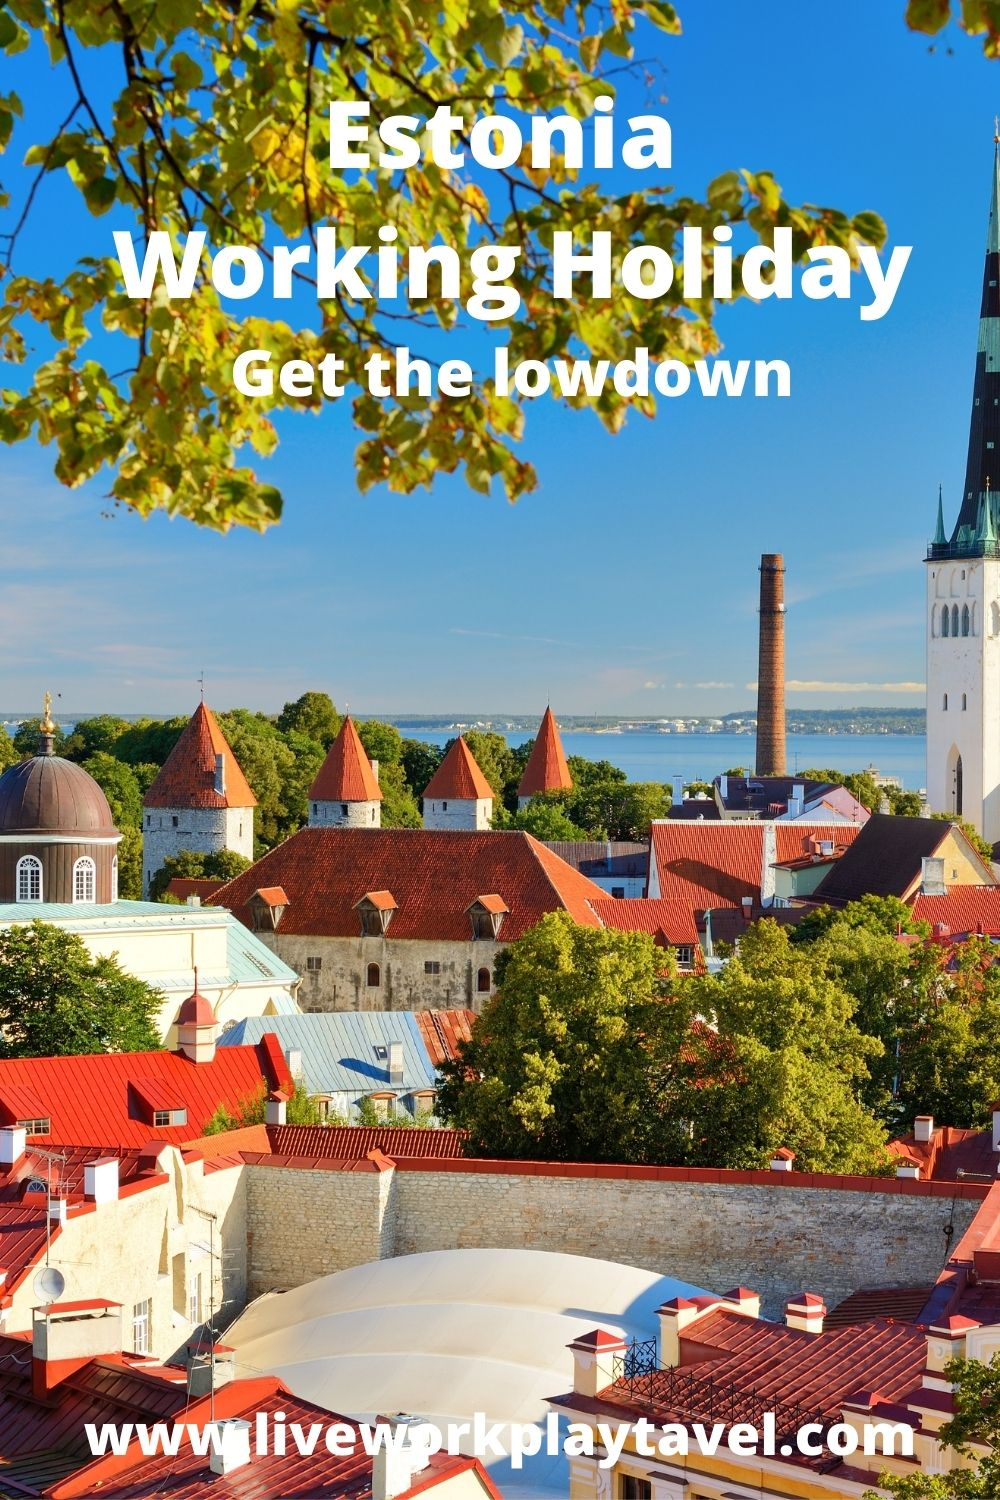 Beautiful Tallinn Skyline With Spired Buildings To Discover On Your Estonia Working Holiday.